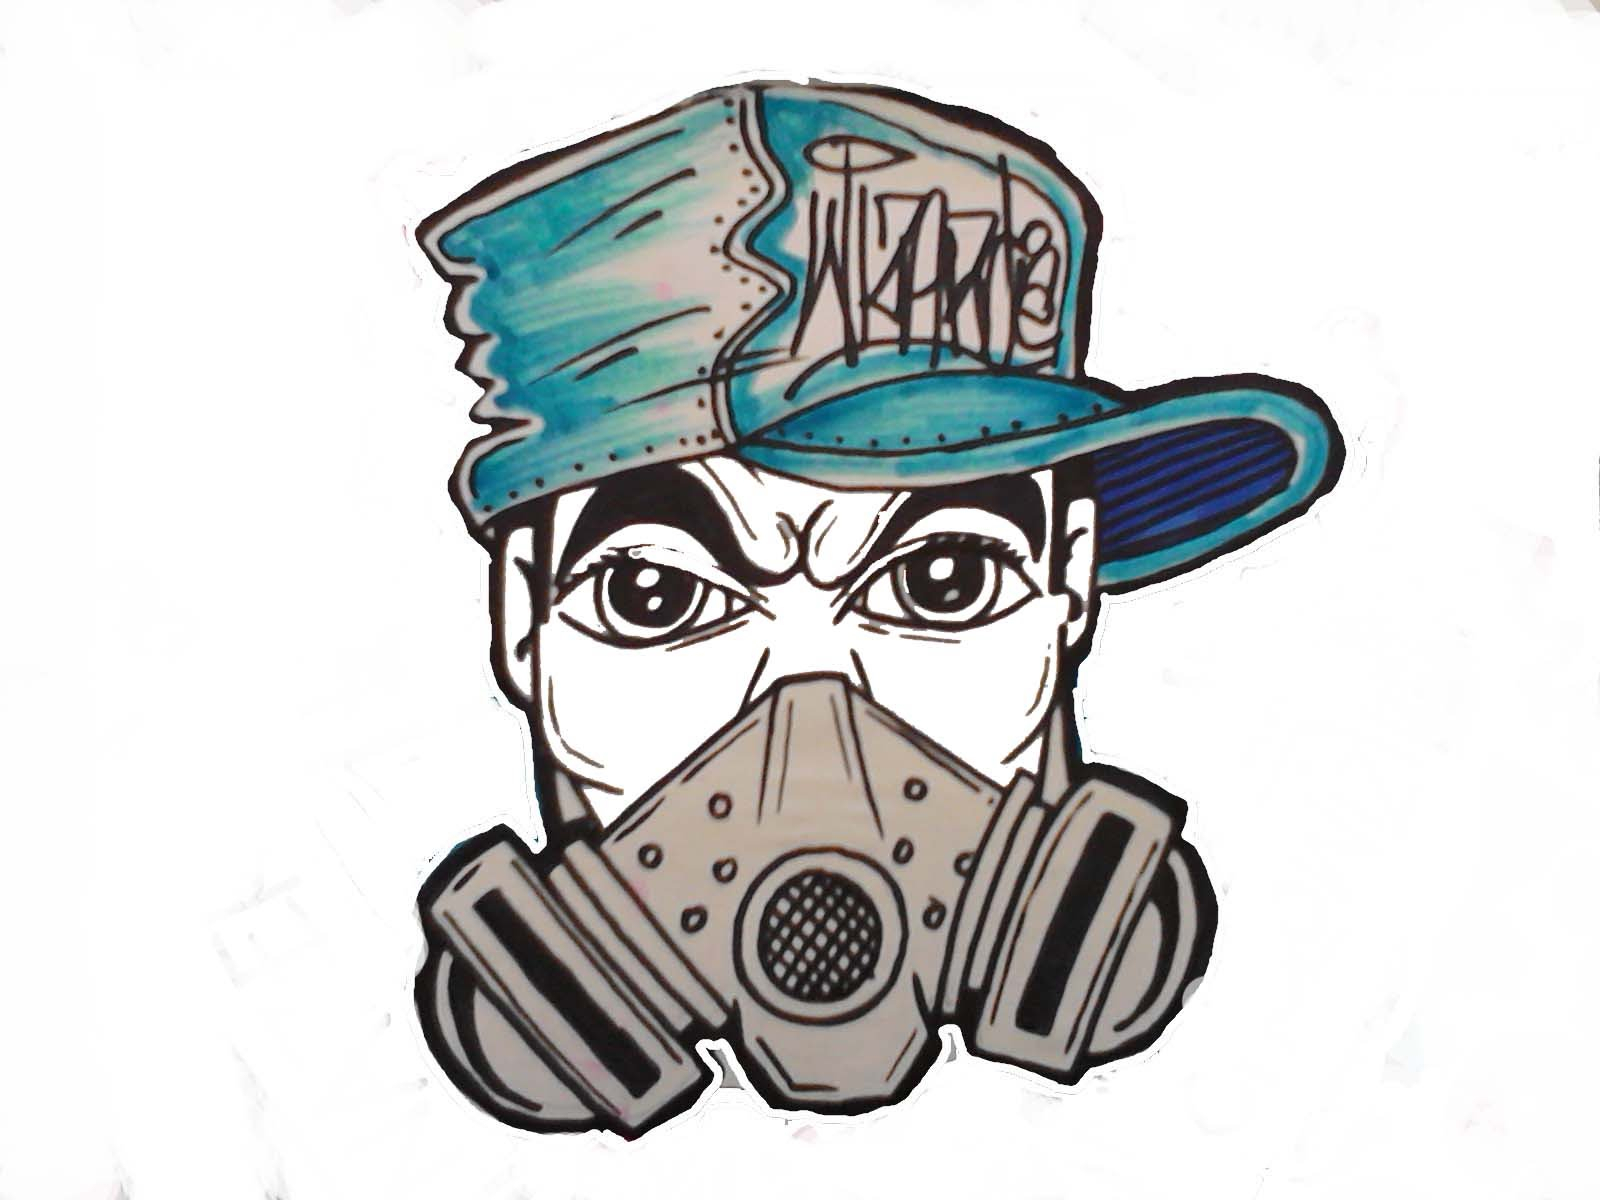 1600x1200 Graffiti Characters Gas Mask Skull Drawing A Gas Mask Character